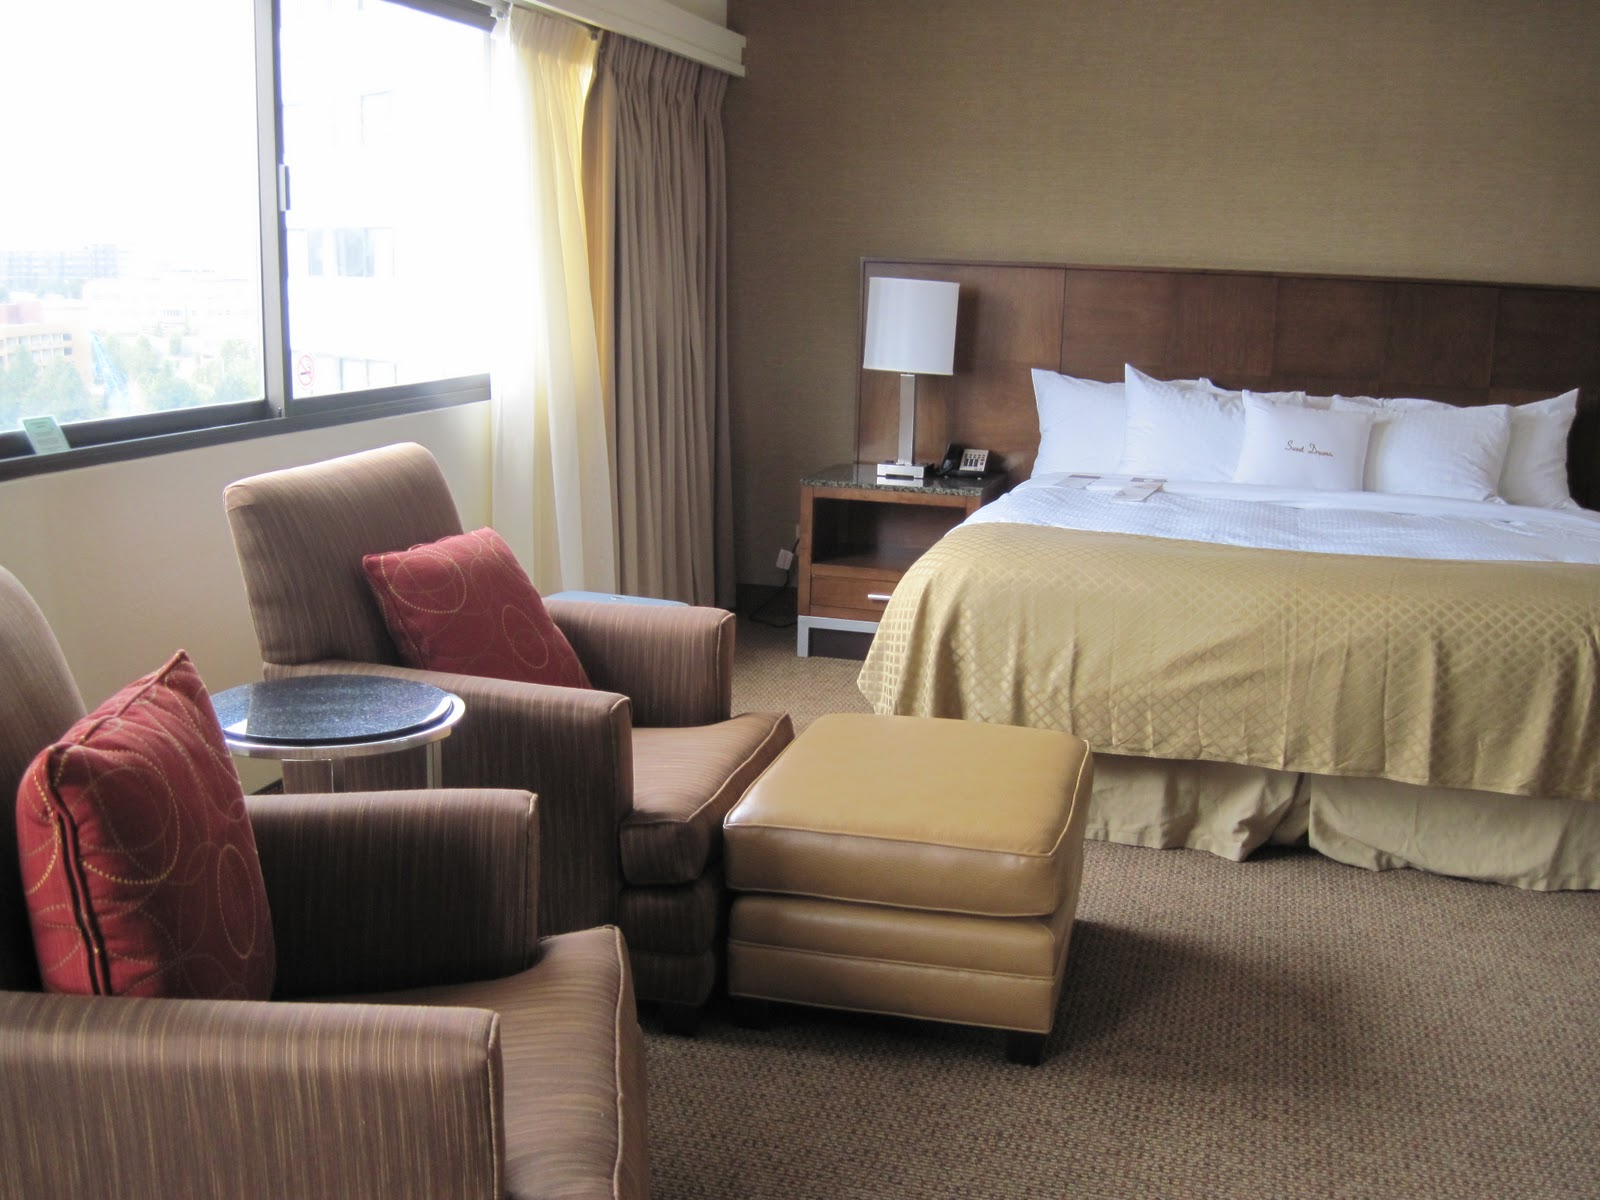 Hotel Rooms Spokane Valley